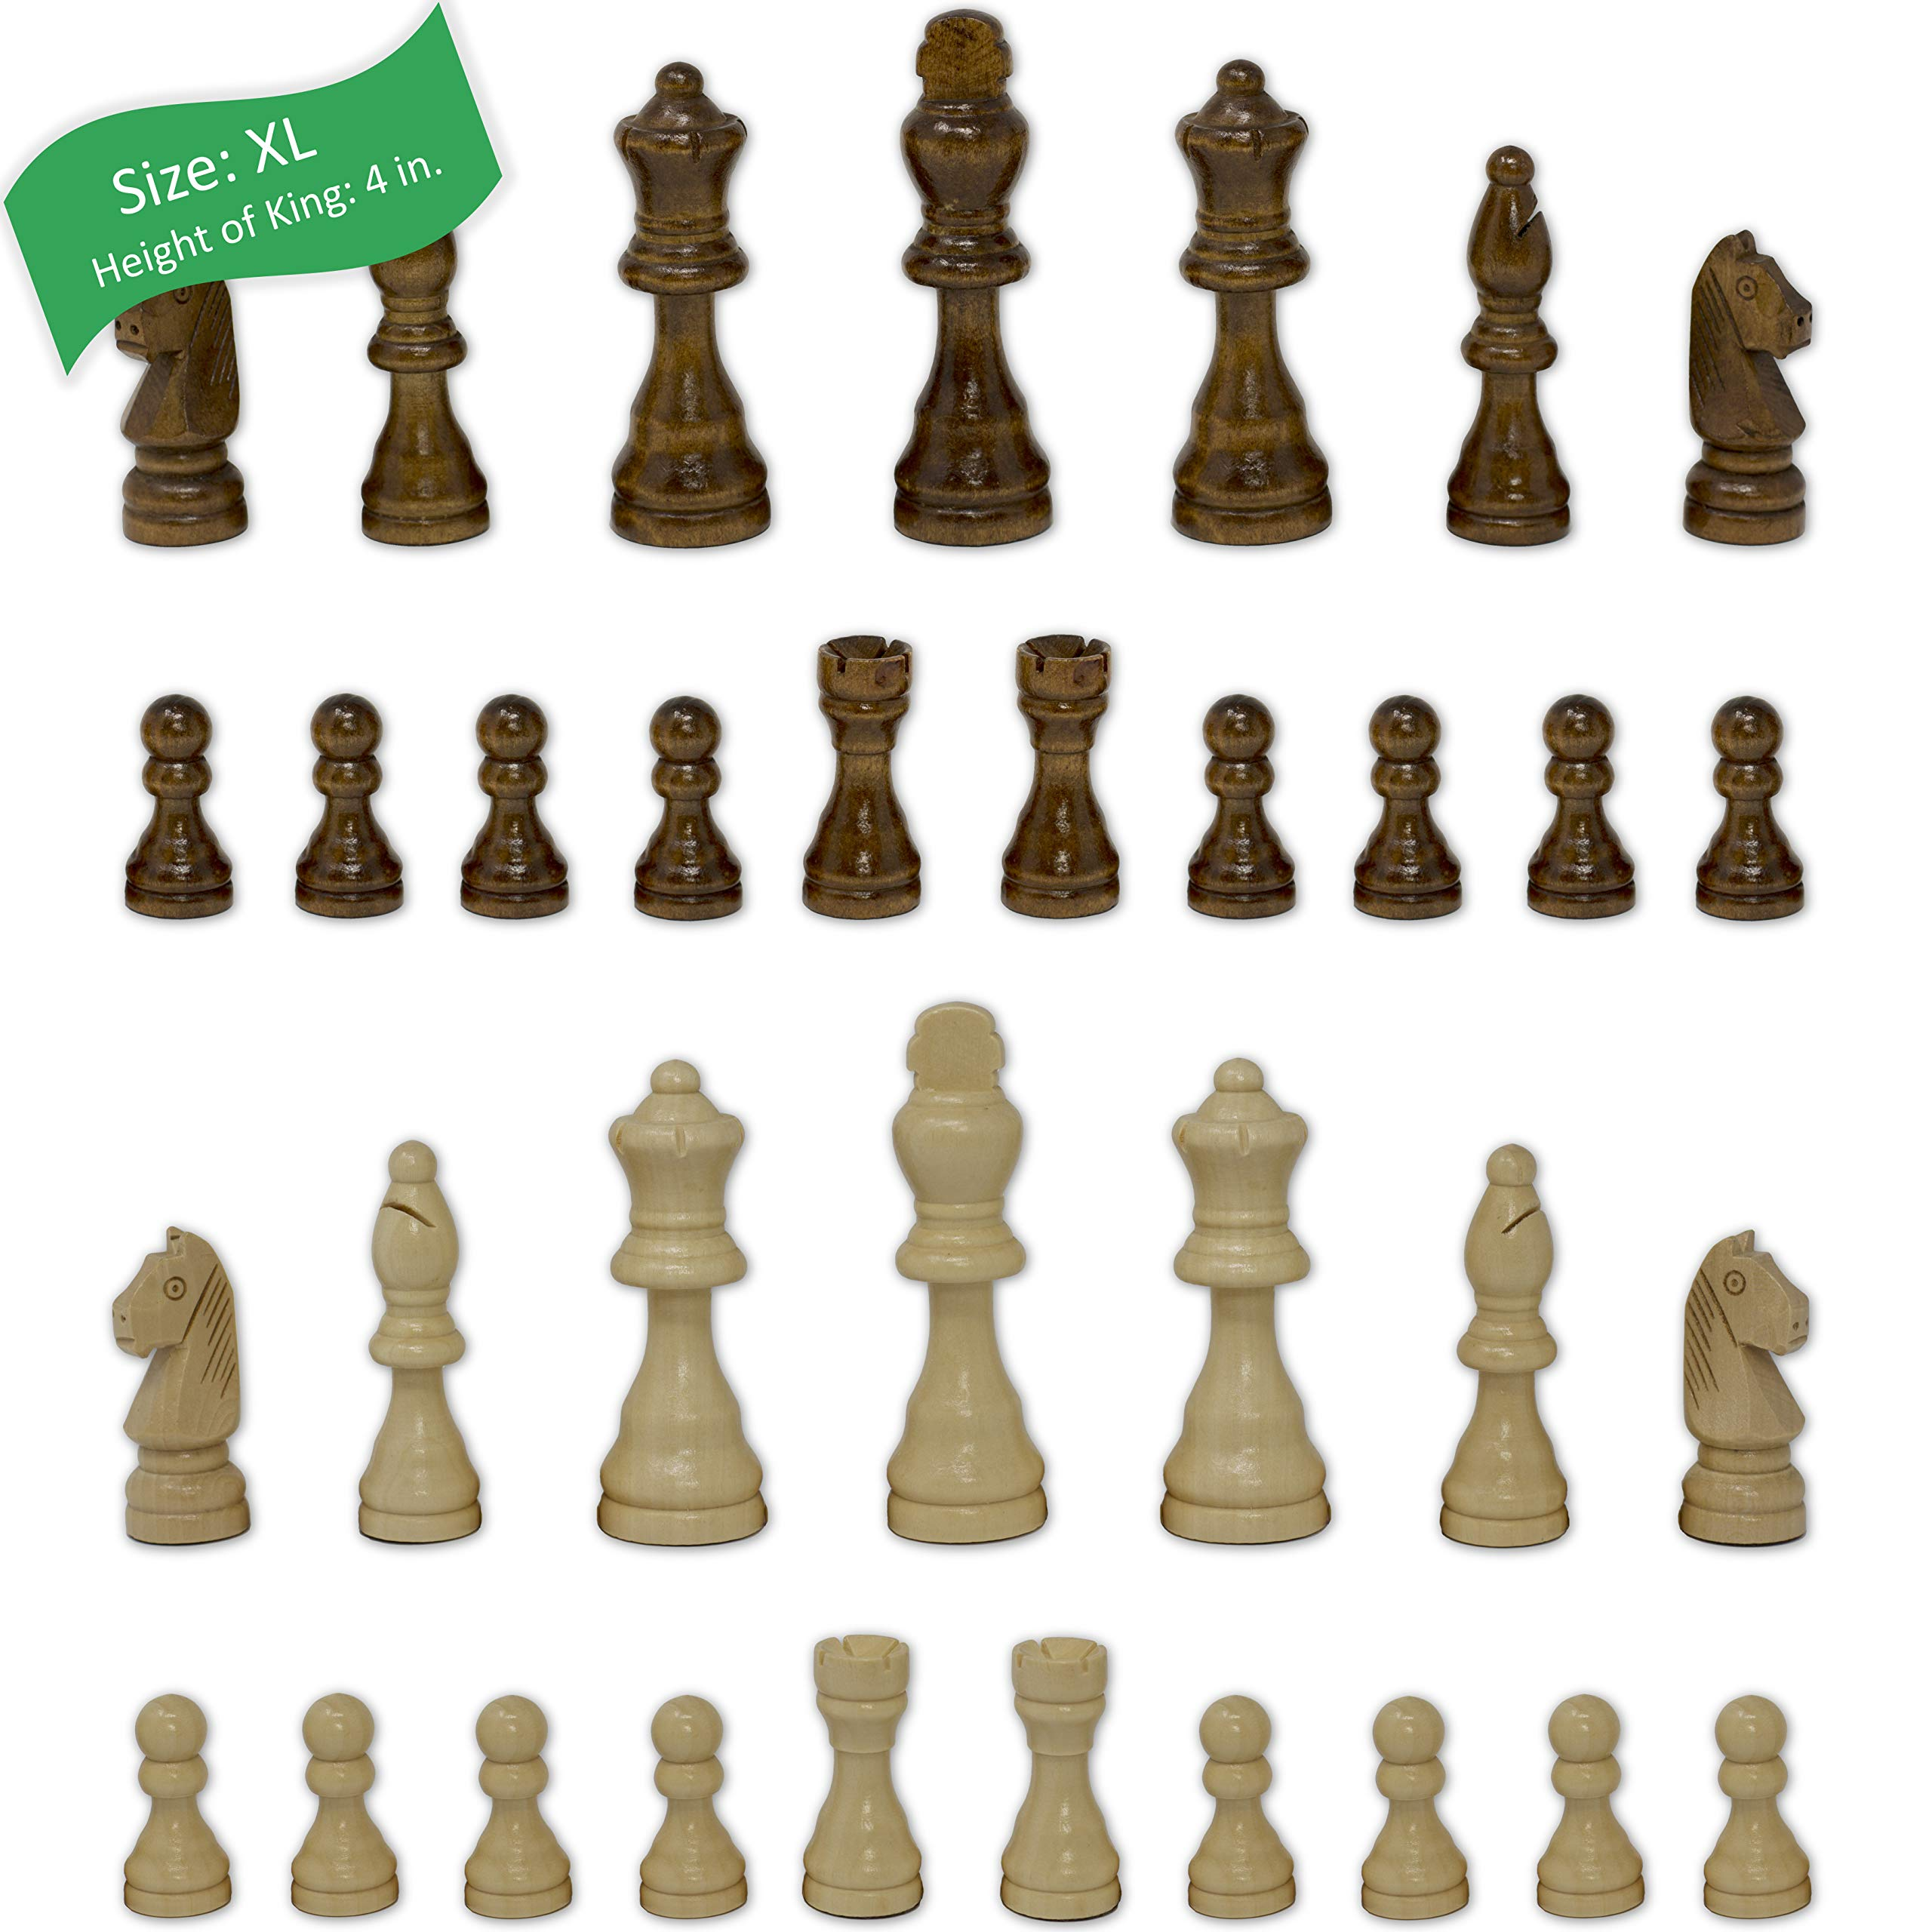 Staunton Chess Pieces by GrowUpSmart with Extra Queens | Size: XLarge - King Height: 4 inches | Wood by GrowUpSmart